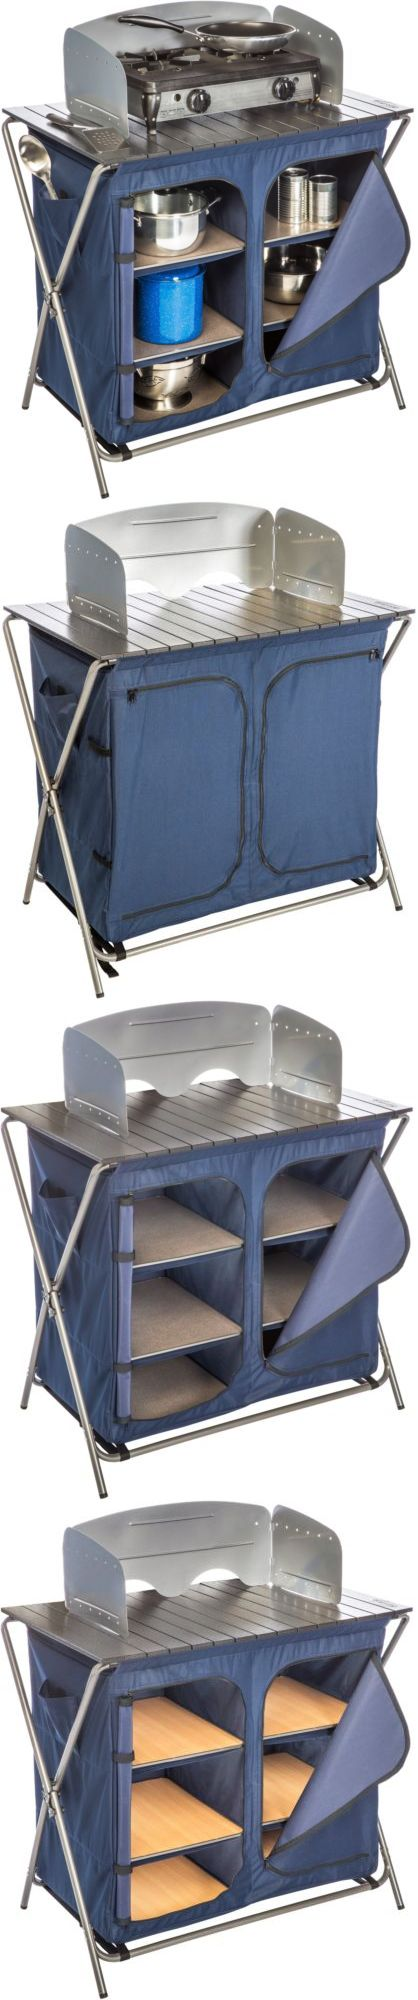 Coleman fish cleaning table re camping sink - Camping Furniture 16038 Camping Folding Cooking Table Portable Kitchen Utility Sink Food Prep New Buy